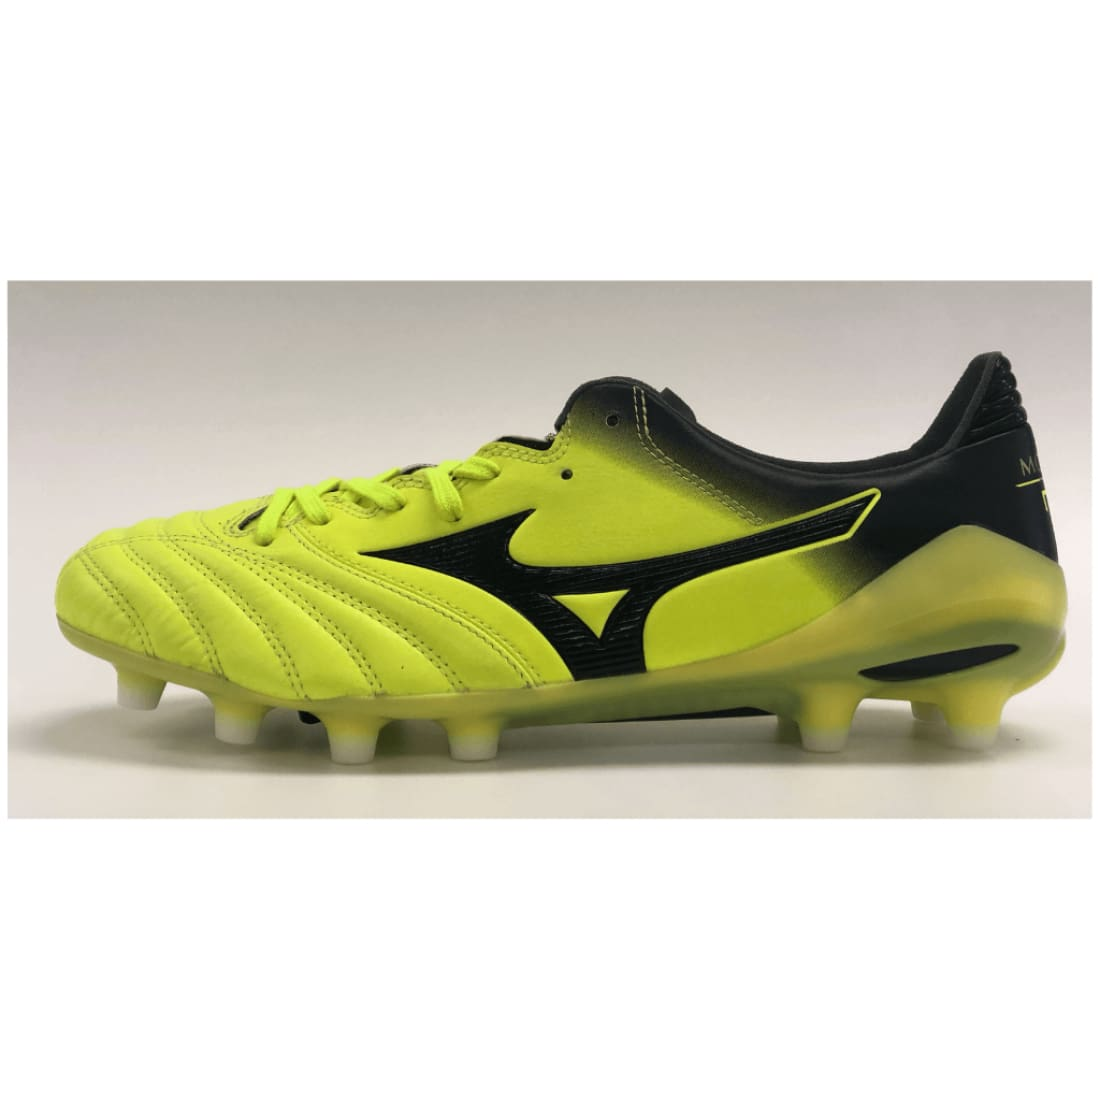 huge discount 298ba 9d10c Mizuno Morelia Neo II MD Firm Ground (FG) Boots